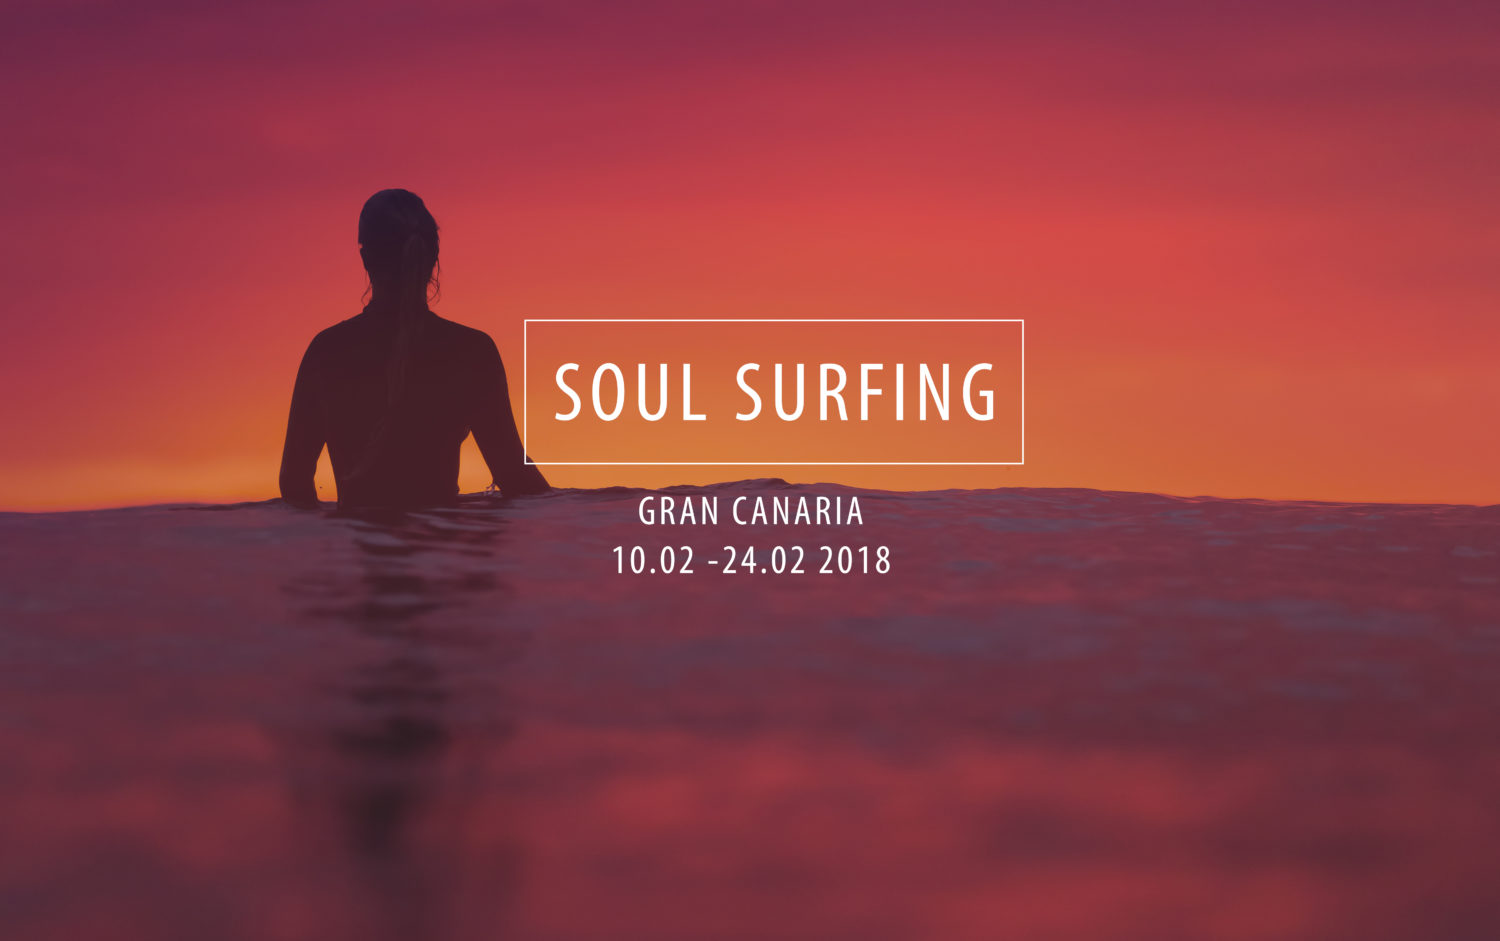 soul surfing gran canaria